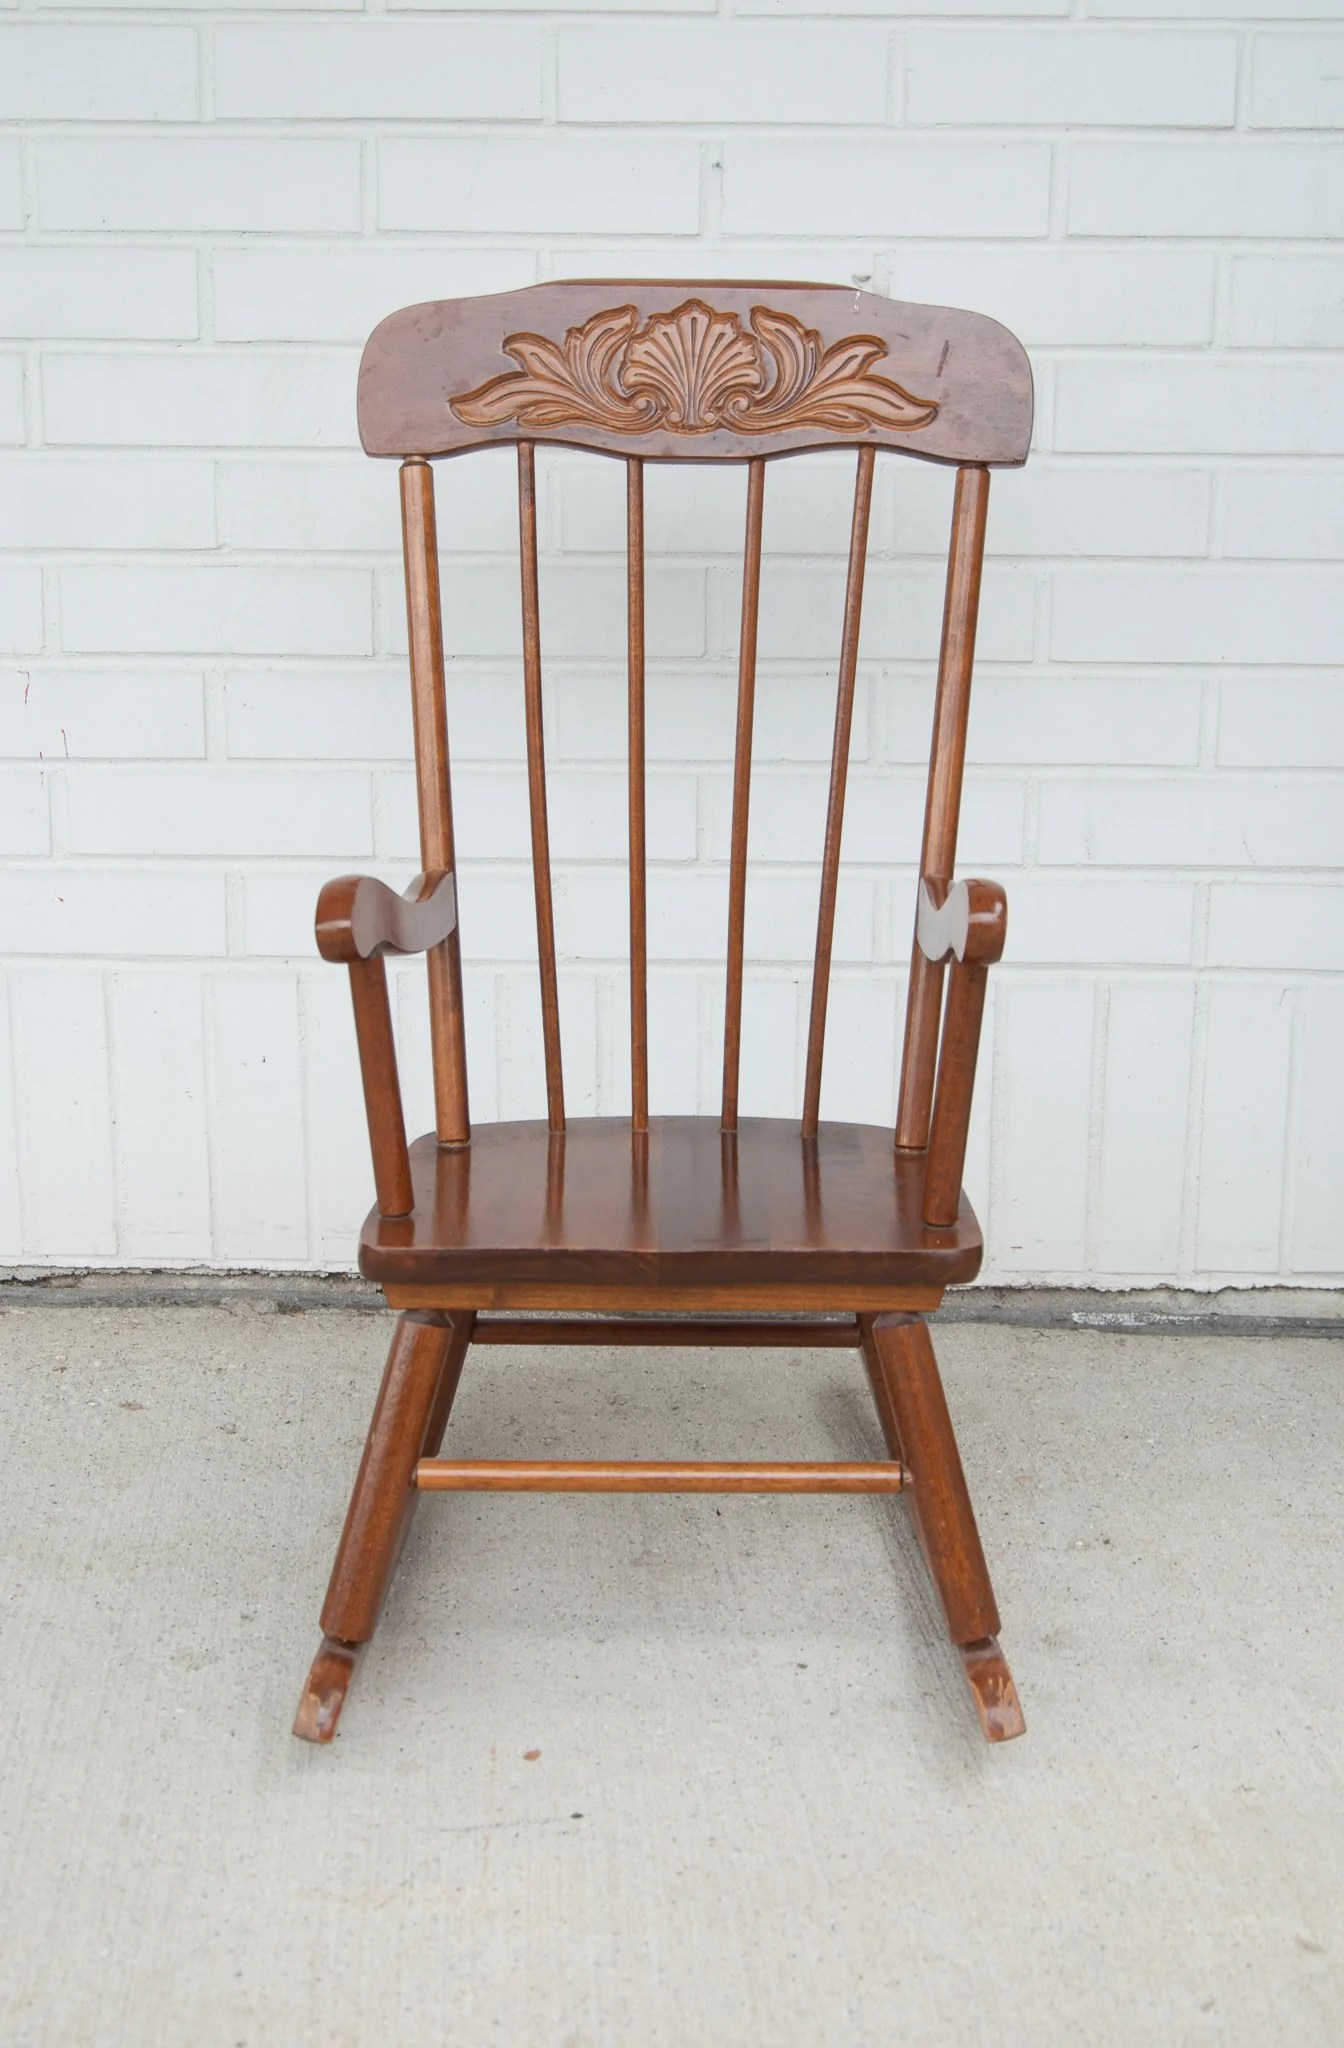 Wood Rocking Chair Child S Wooden Rocking Chair W Wood Carved Detail